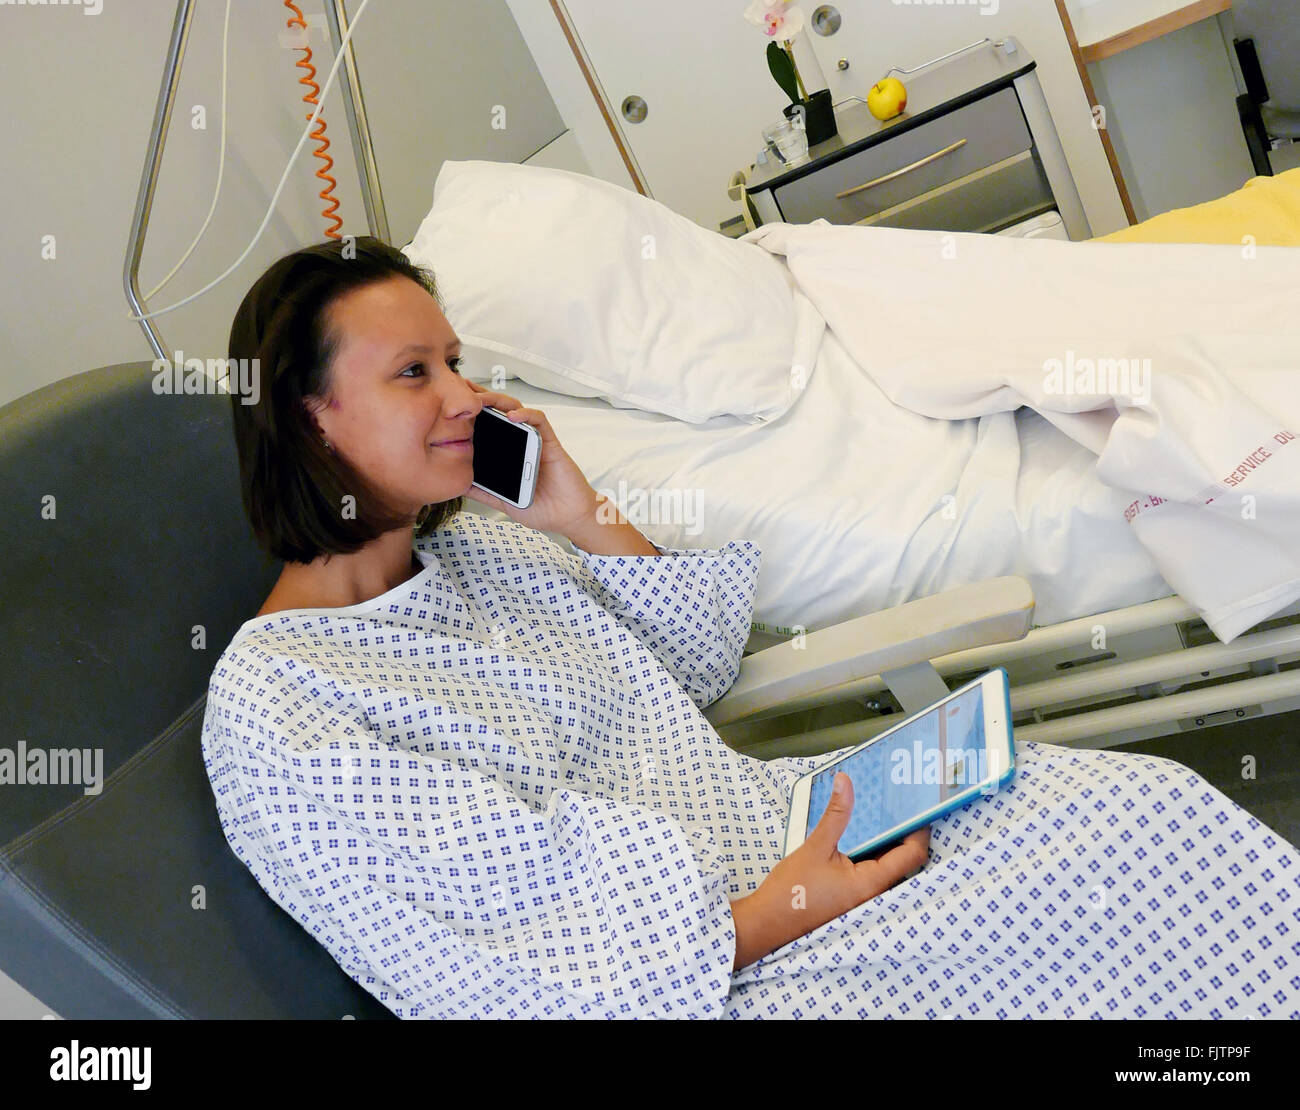 Hospital Gown Stock Photos & Hospital Gown Stock Images - Alamy